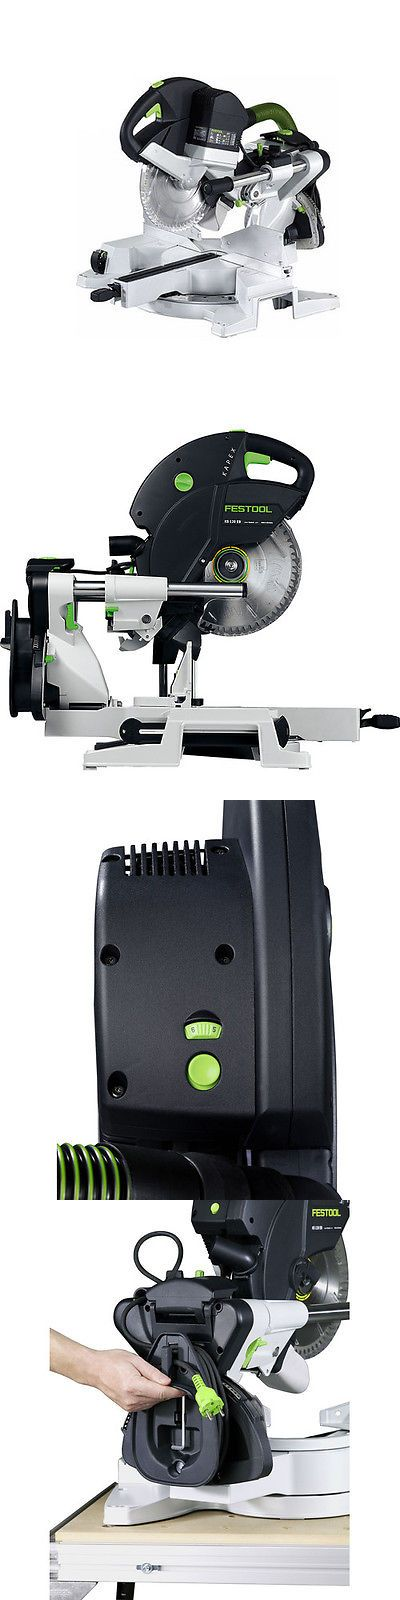 Miter and Chop Saws 20787: Festool Kapex Ks 120 Eb Sliding Compound Miter Saw 561287 New -> BUY IT NOW ONLY: $1475 on eBay!